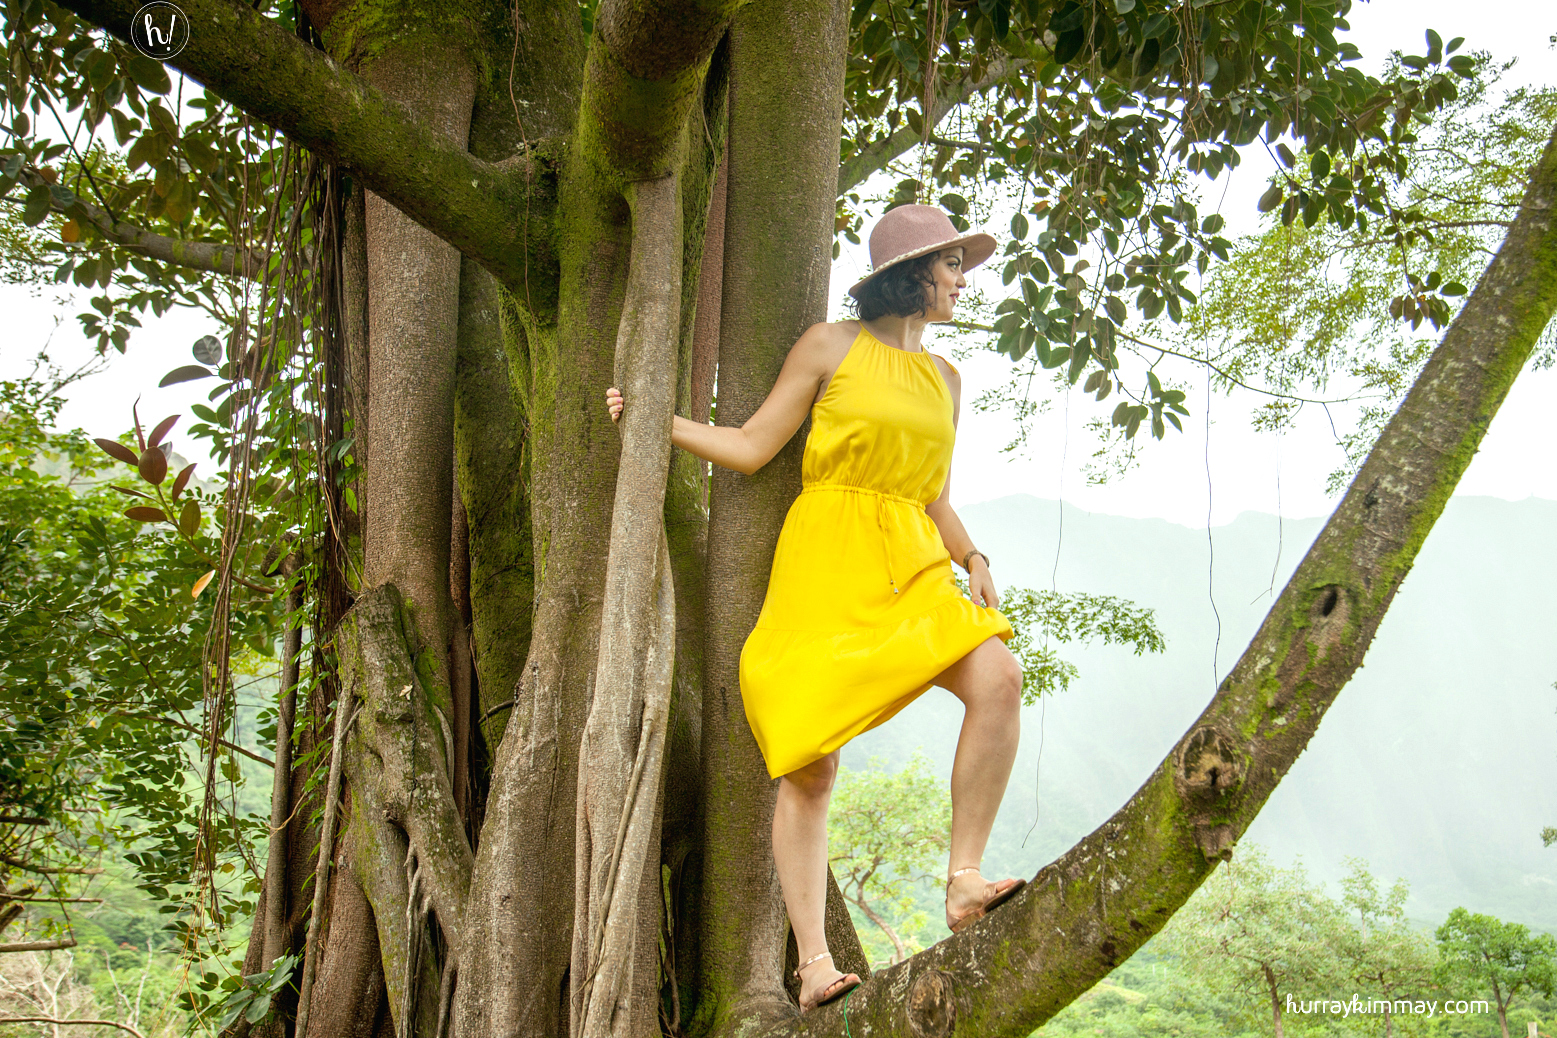 Go out on a limb! Kimmay explains how she learns lessons from trees in this Hurray Kimmay blog